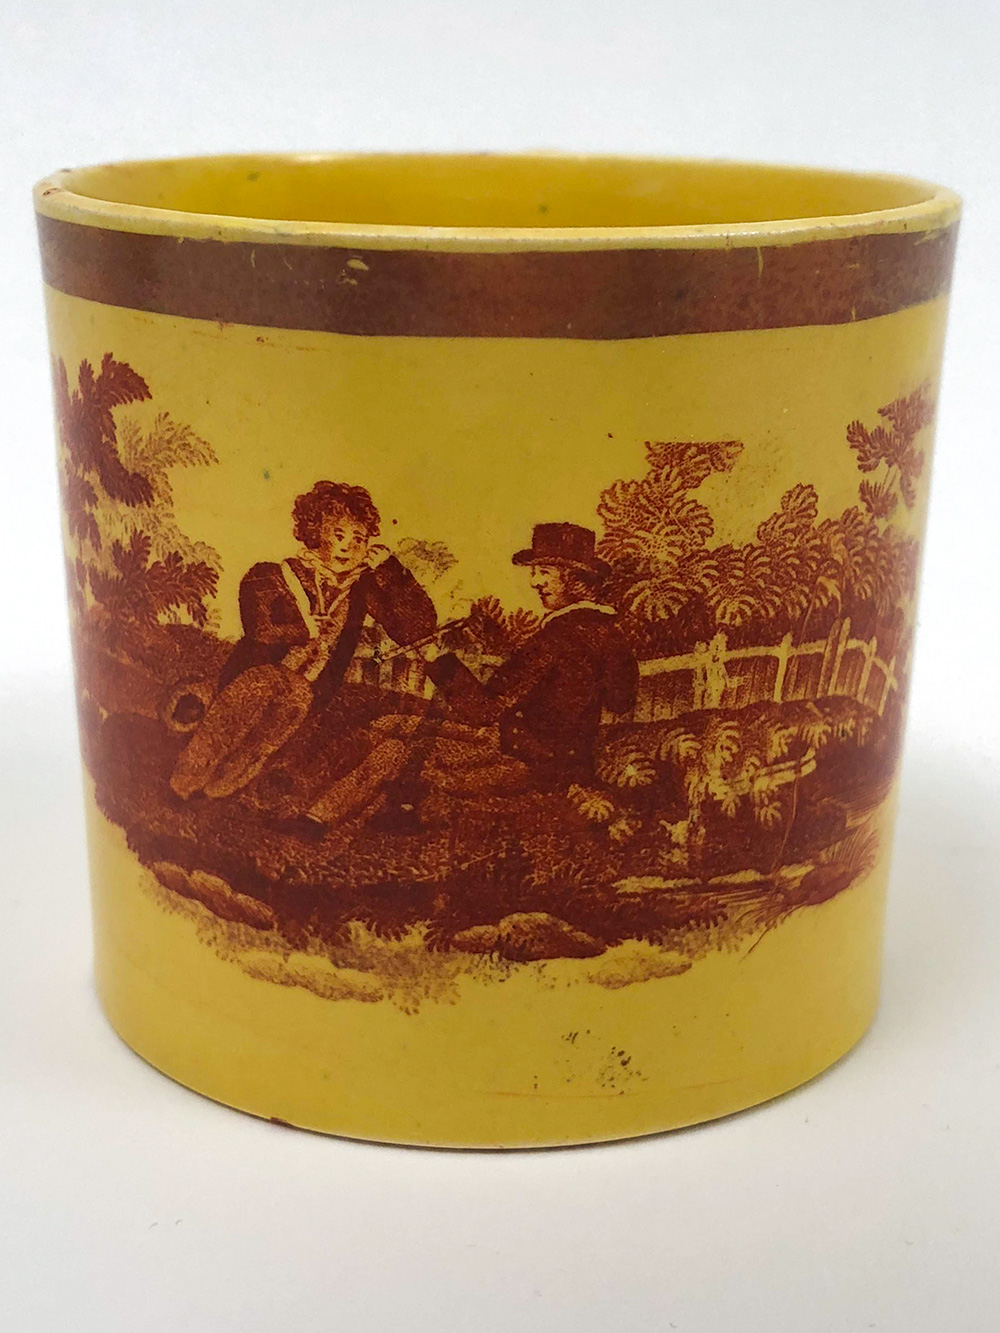 Antiqe Canaryware Transfer Decorated Yellow Mug with Pastoral Romantic Scene of Two Gentlemen For Sale From Z and K Antiques